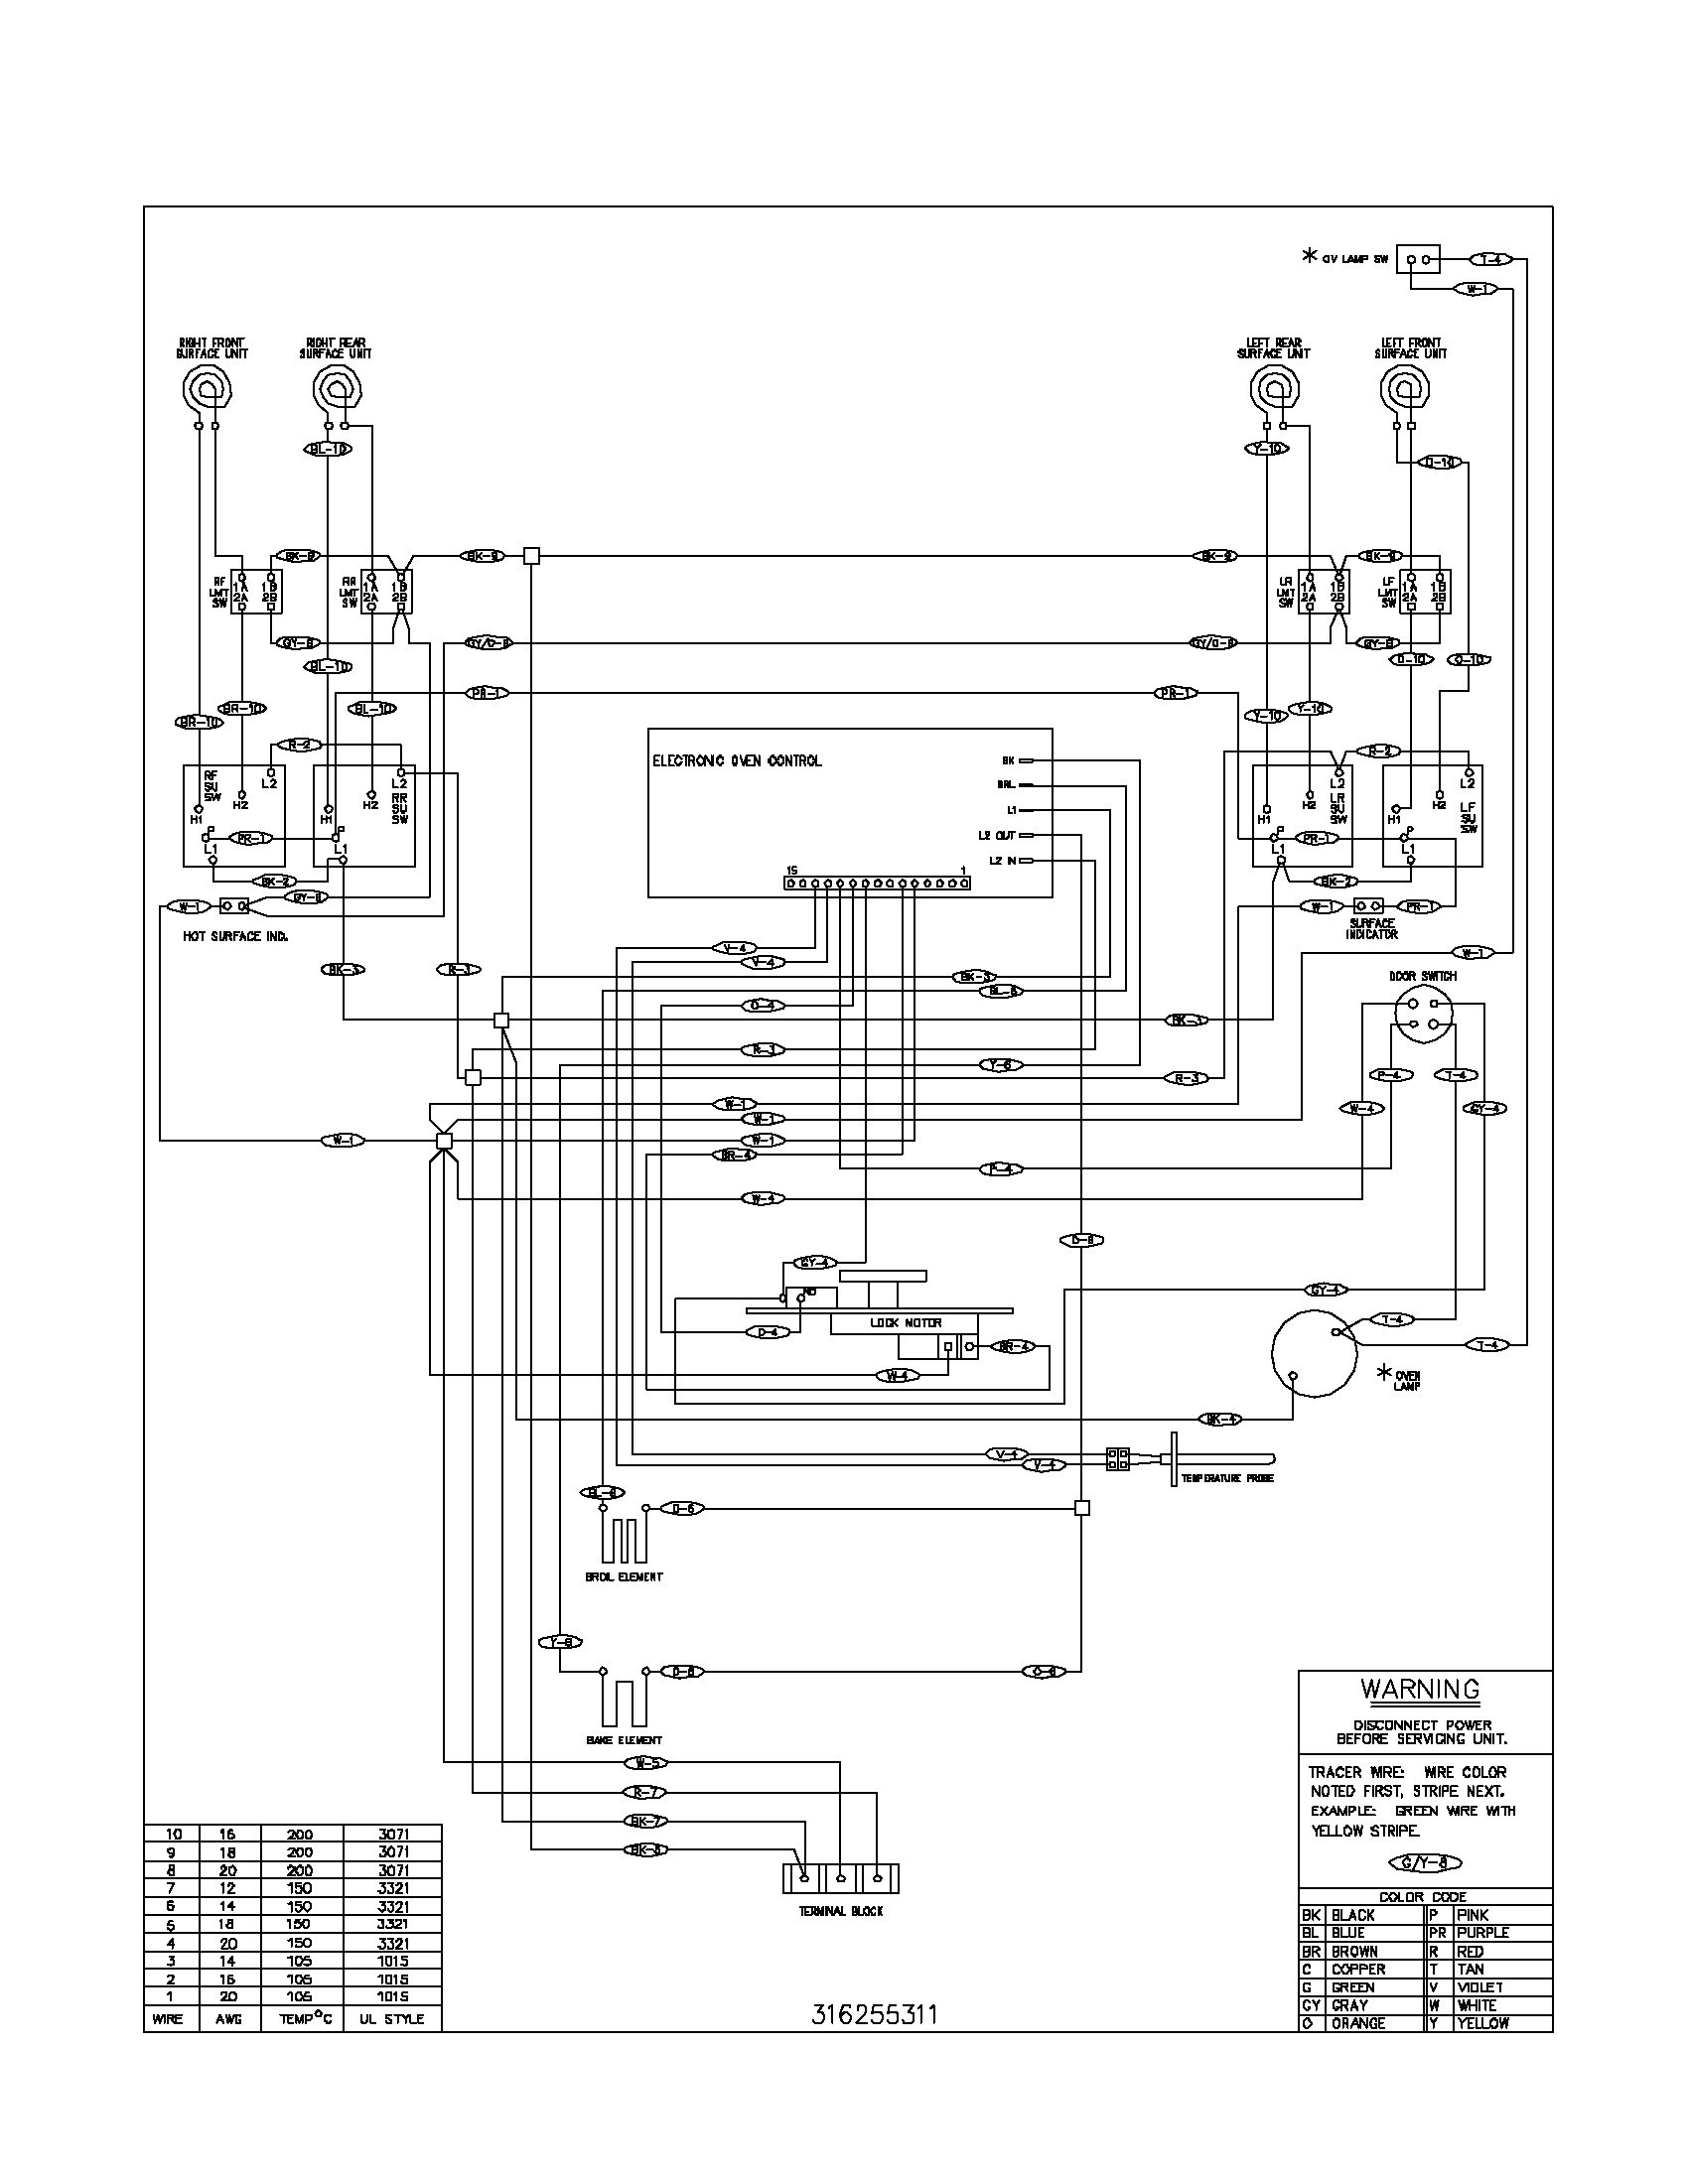 Club Car 16v Wiring Diagram Free Picture Basic Home Boiler Auto Electrical Cat5e Wire Series Breaker Fuse Box And A 1998 Isuzu Hombre Fuel Pump